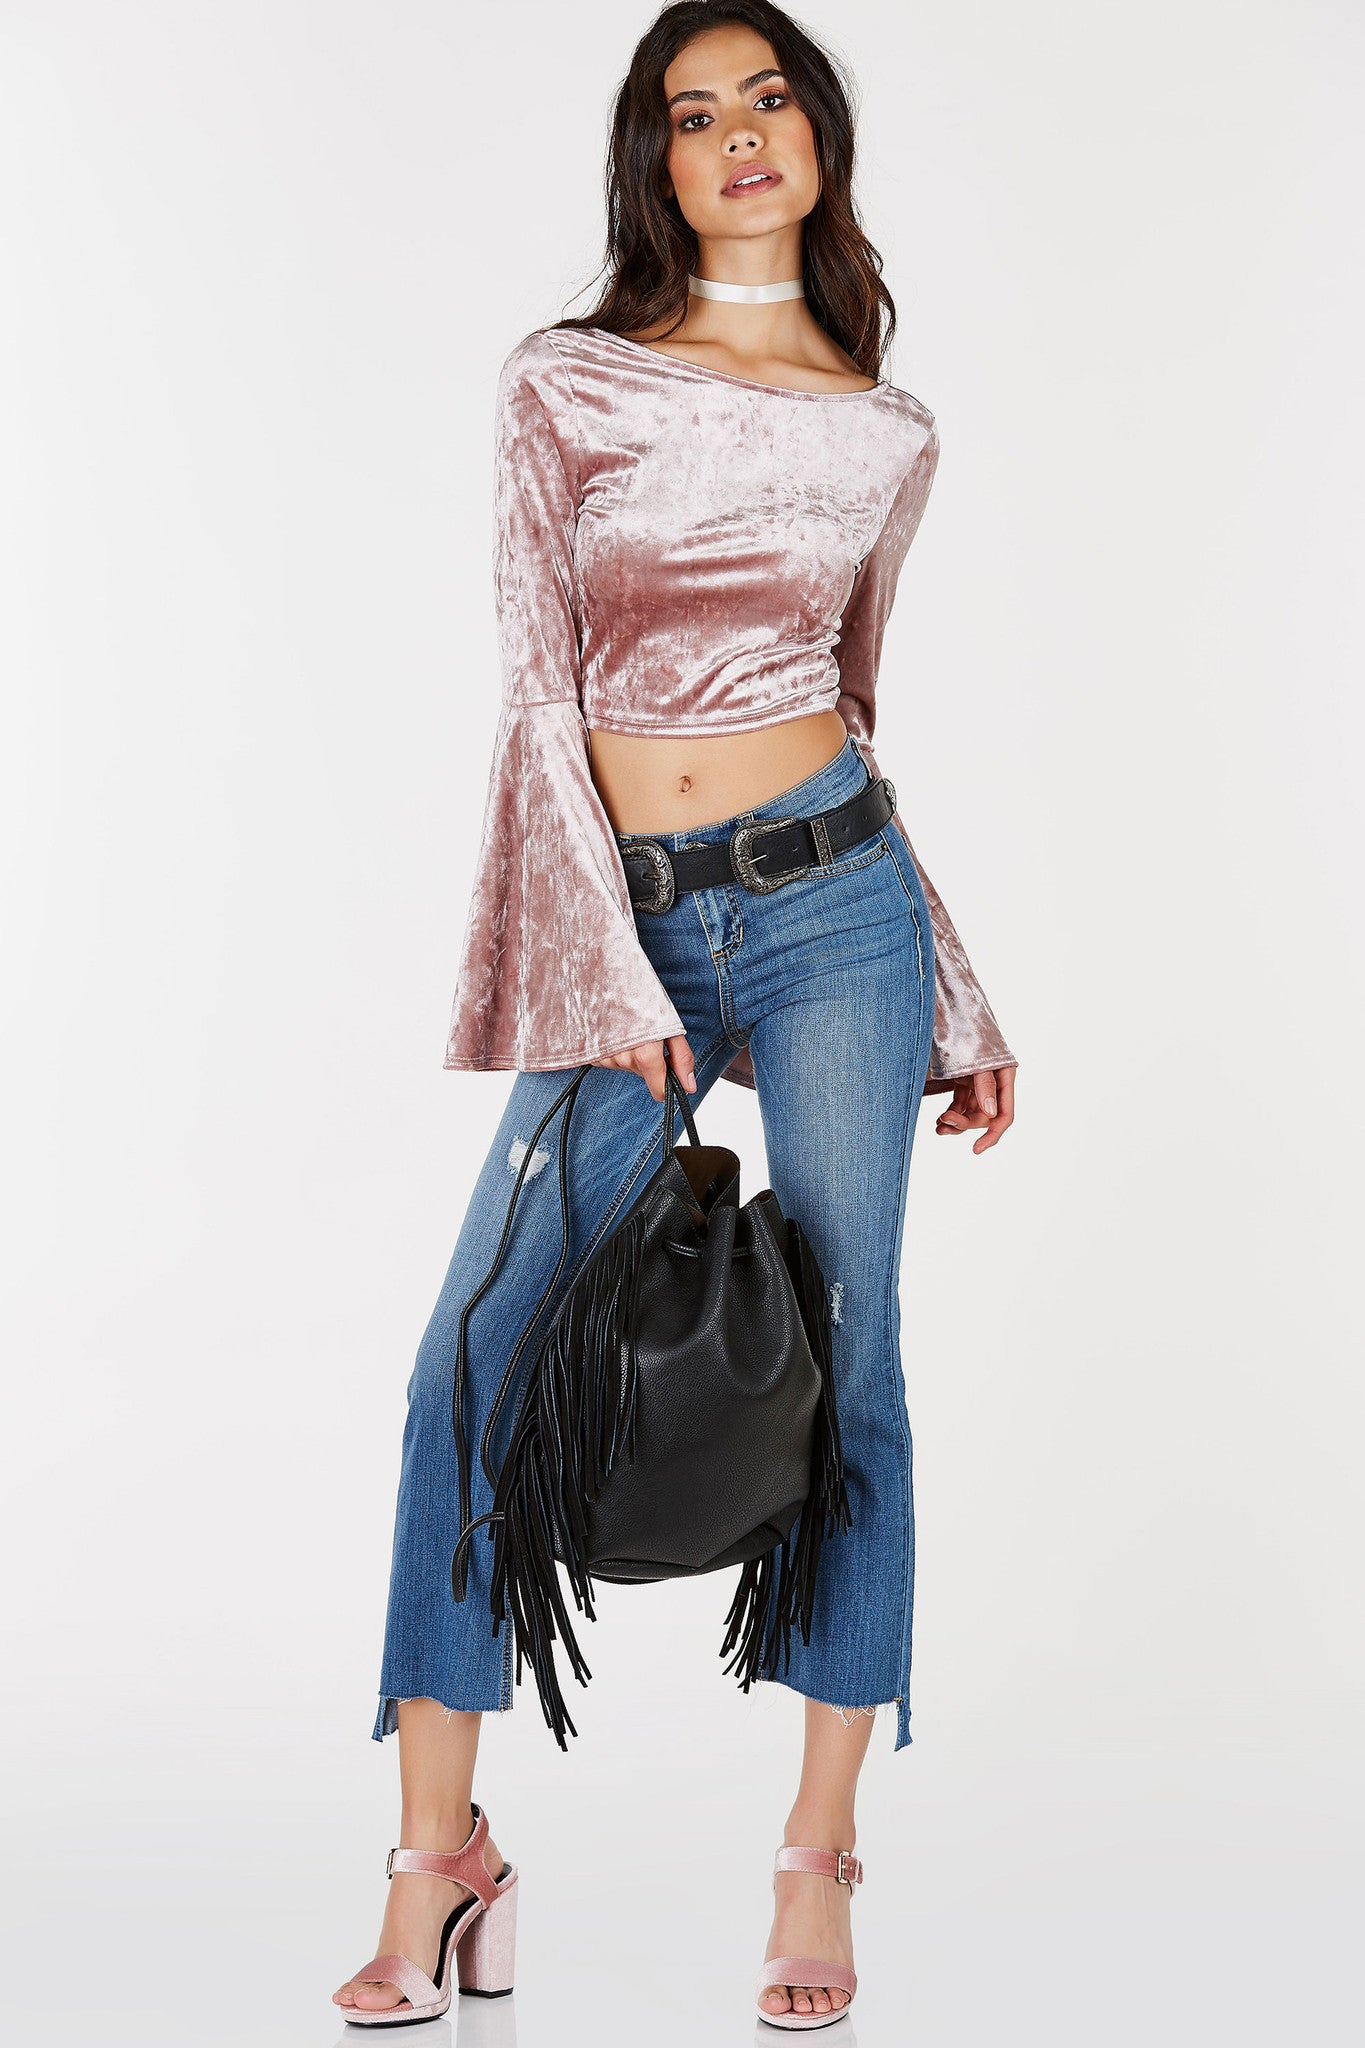 A flirty scoop neck crop top with some groovy long bell sleeves for style. Stunning velvet finish with a lower cut back. Perfect for date nights or parties with a semi-casual vibe. Style with high waist pants and heels!